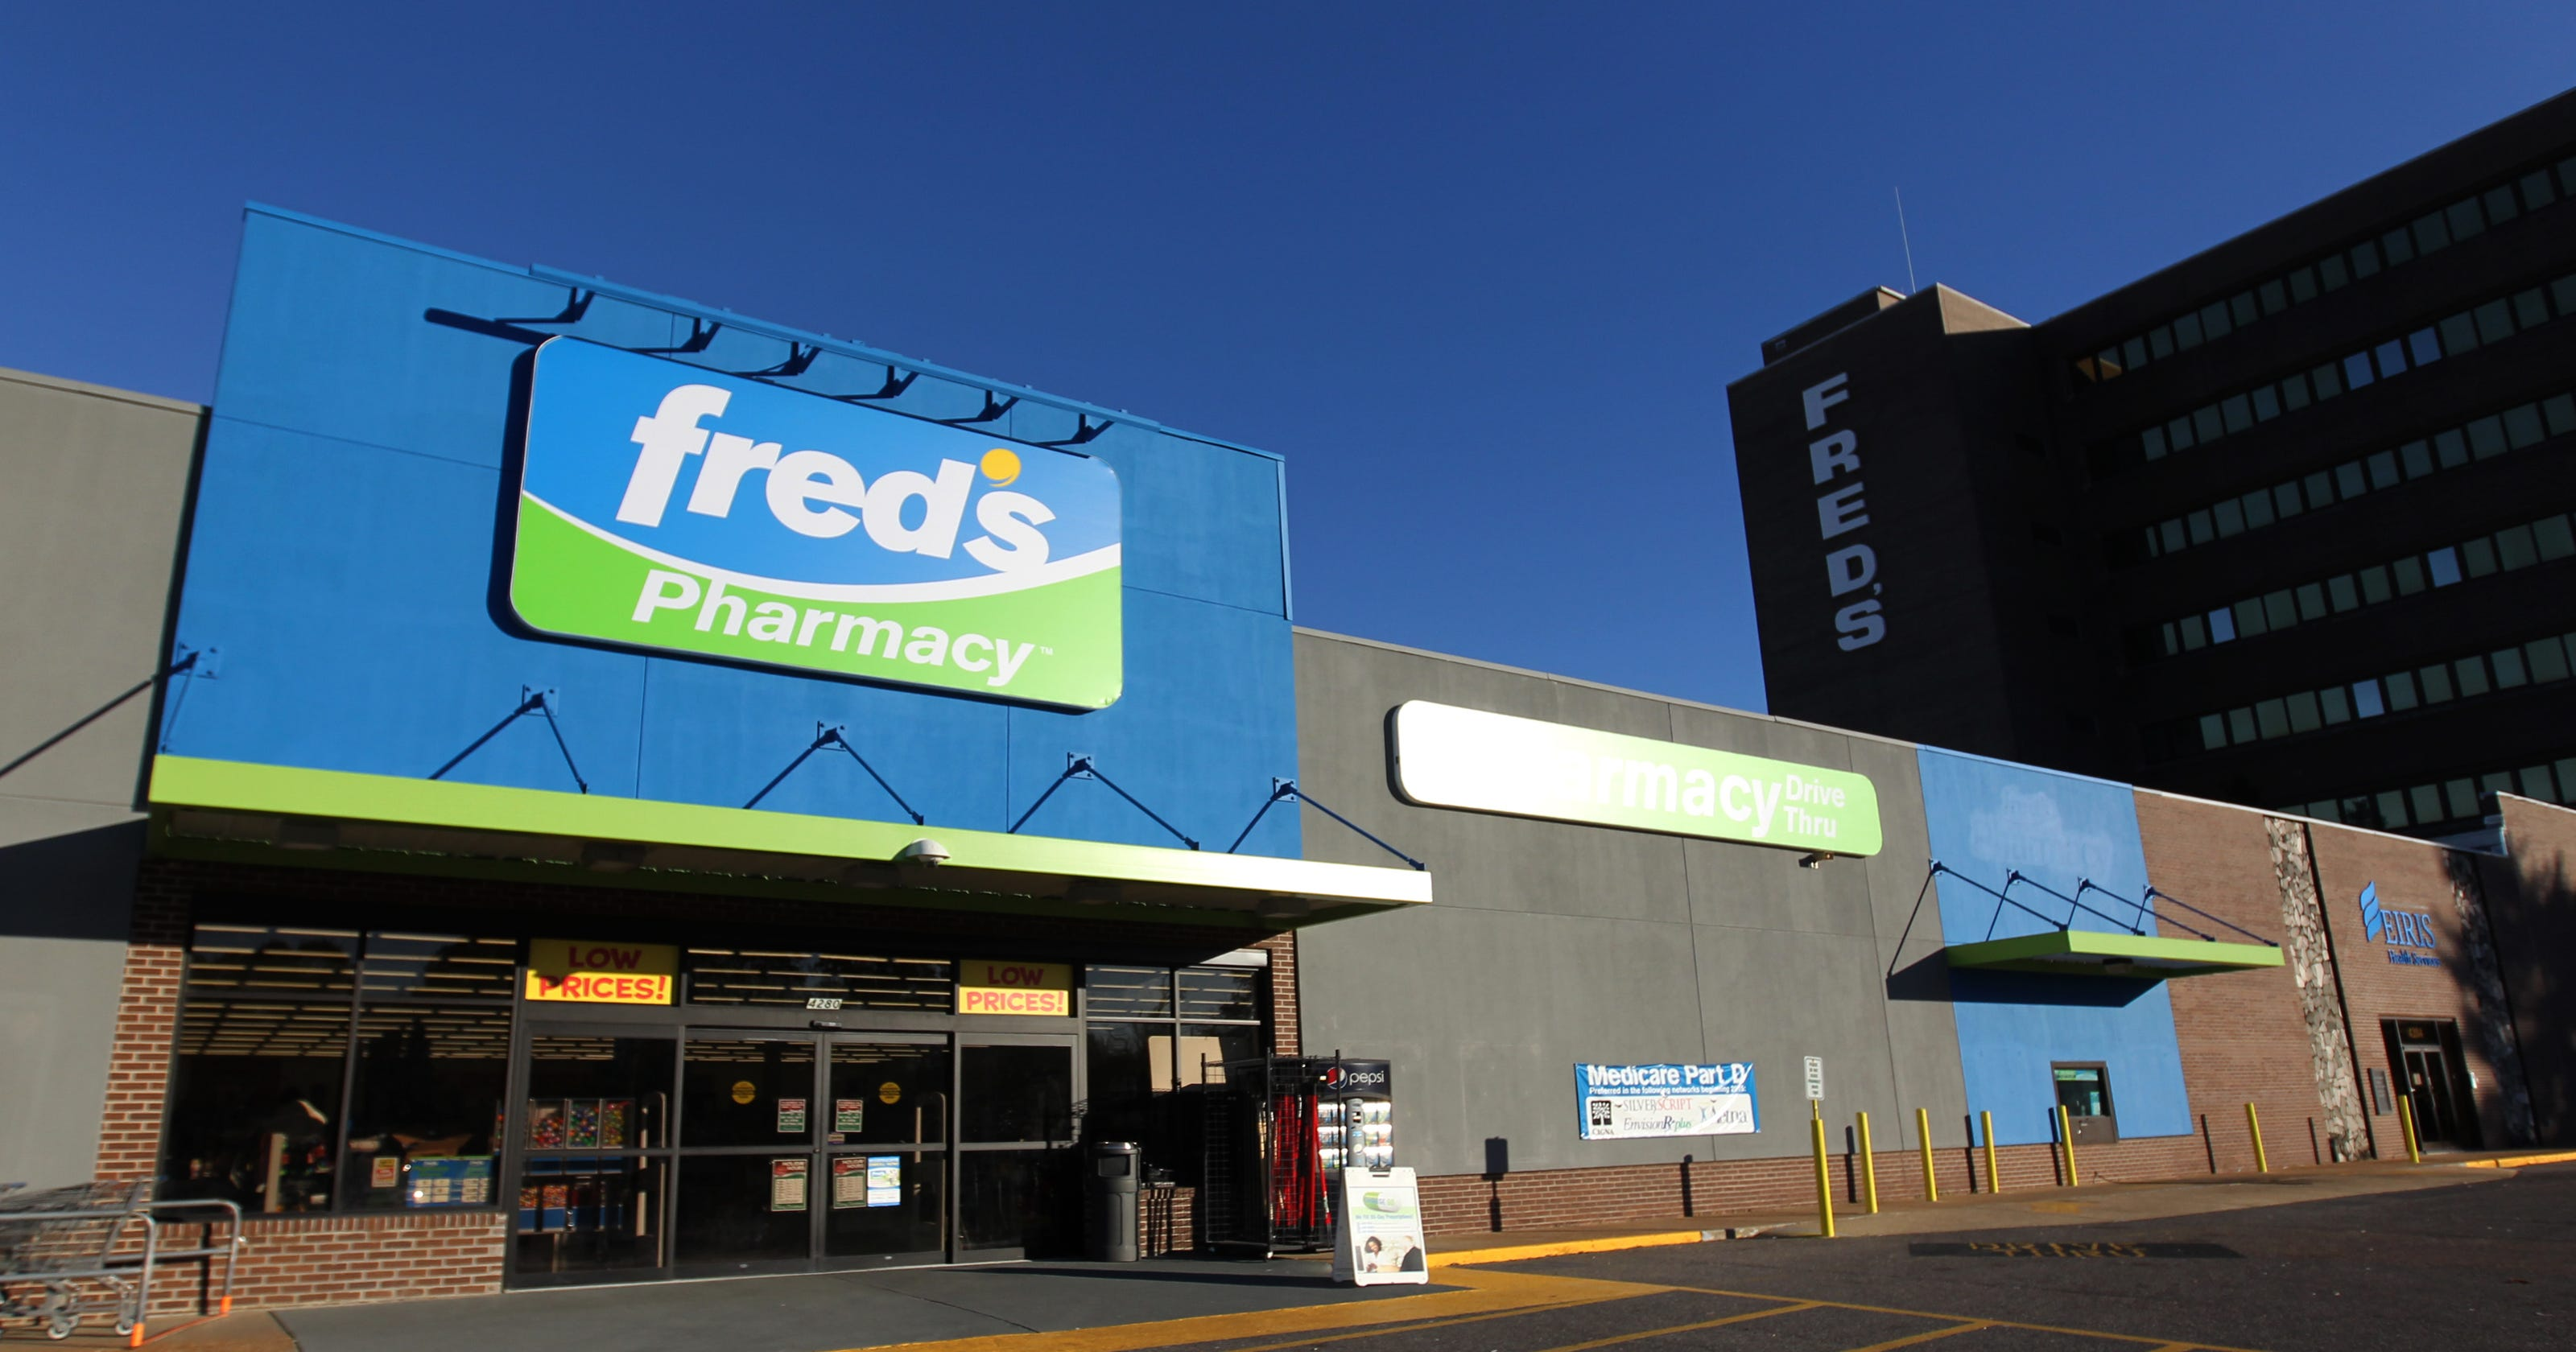 Memphis-based Fred's to lay off 80, sell 185 pharmacies